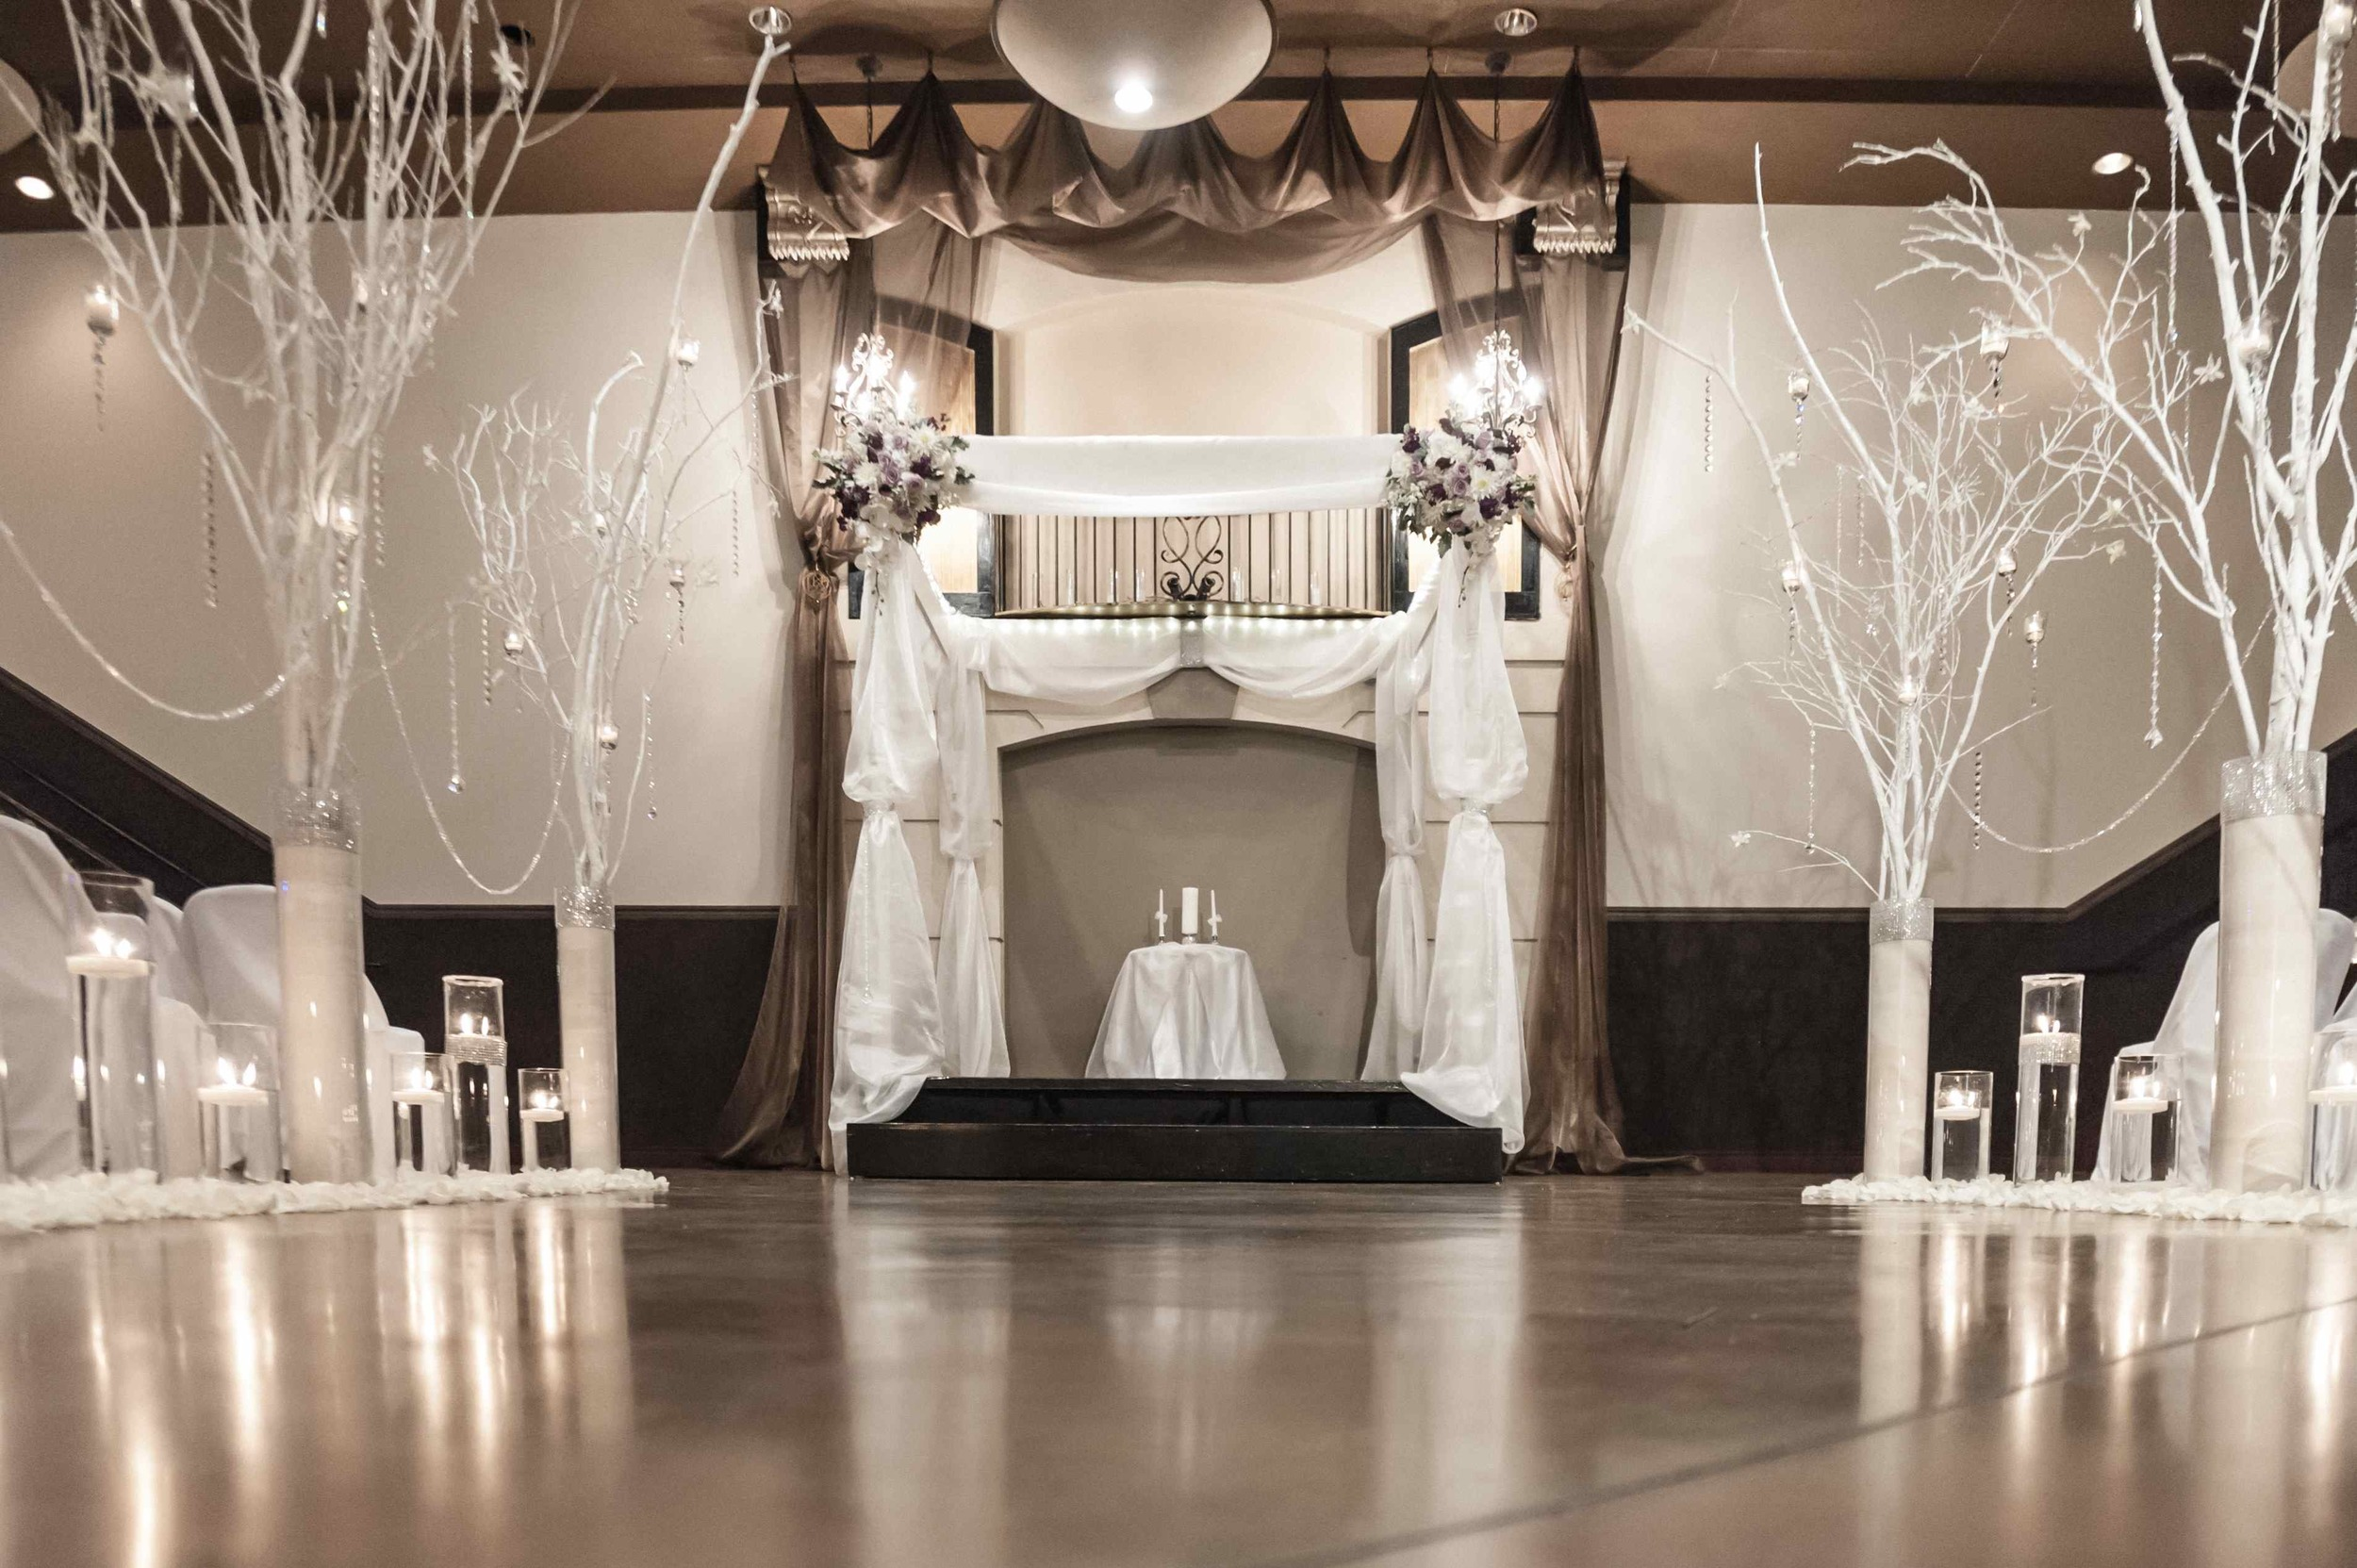 Dramatic-winter-white-wedding-decor-at-Bella-Sera.jpg